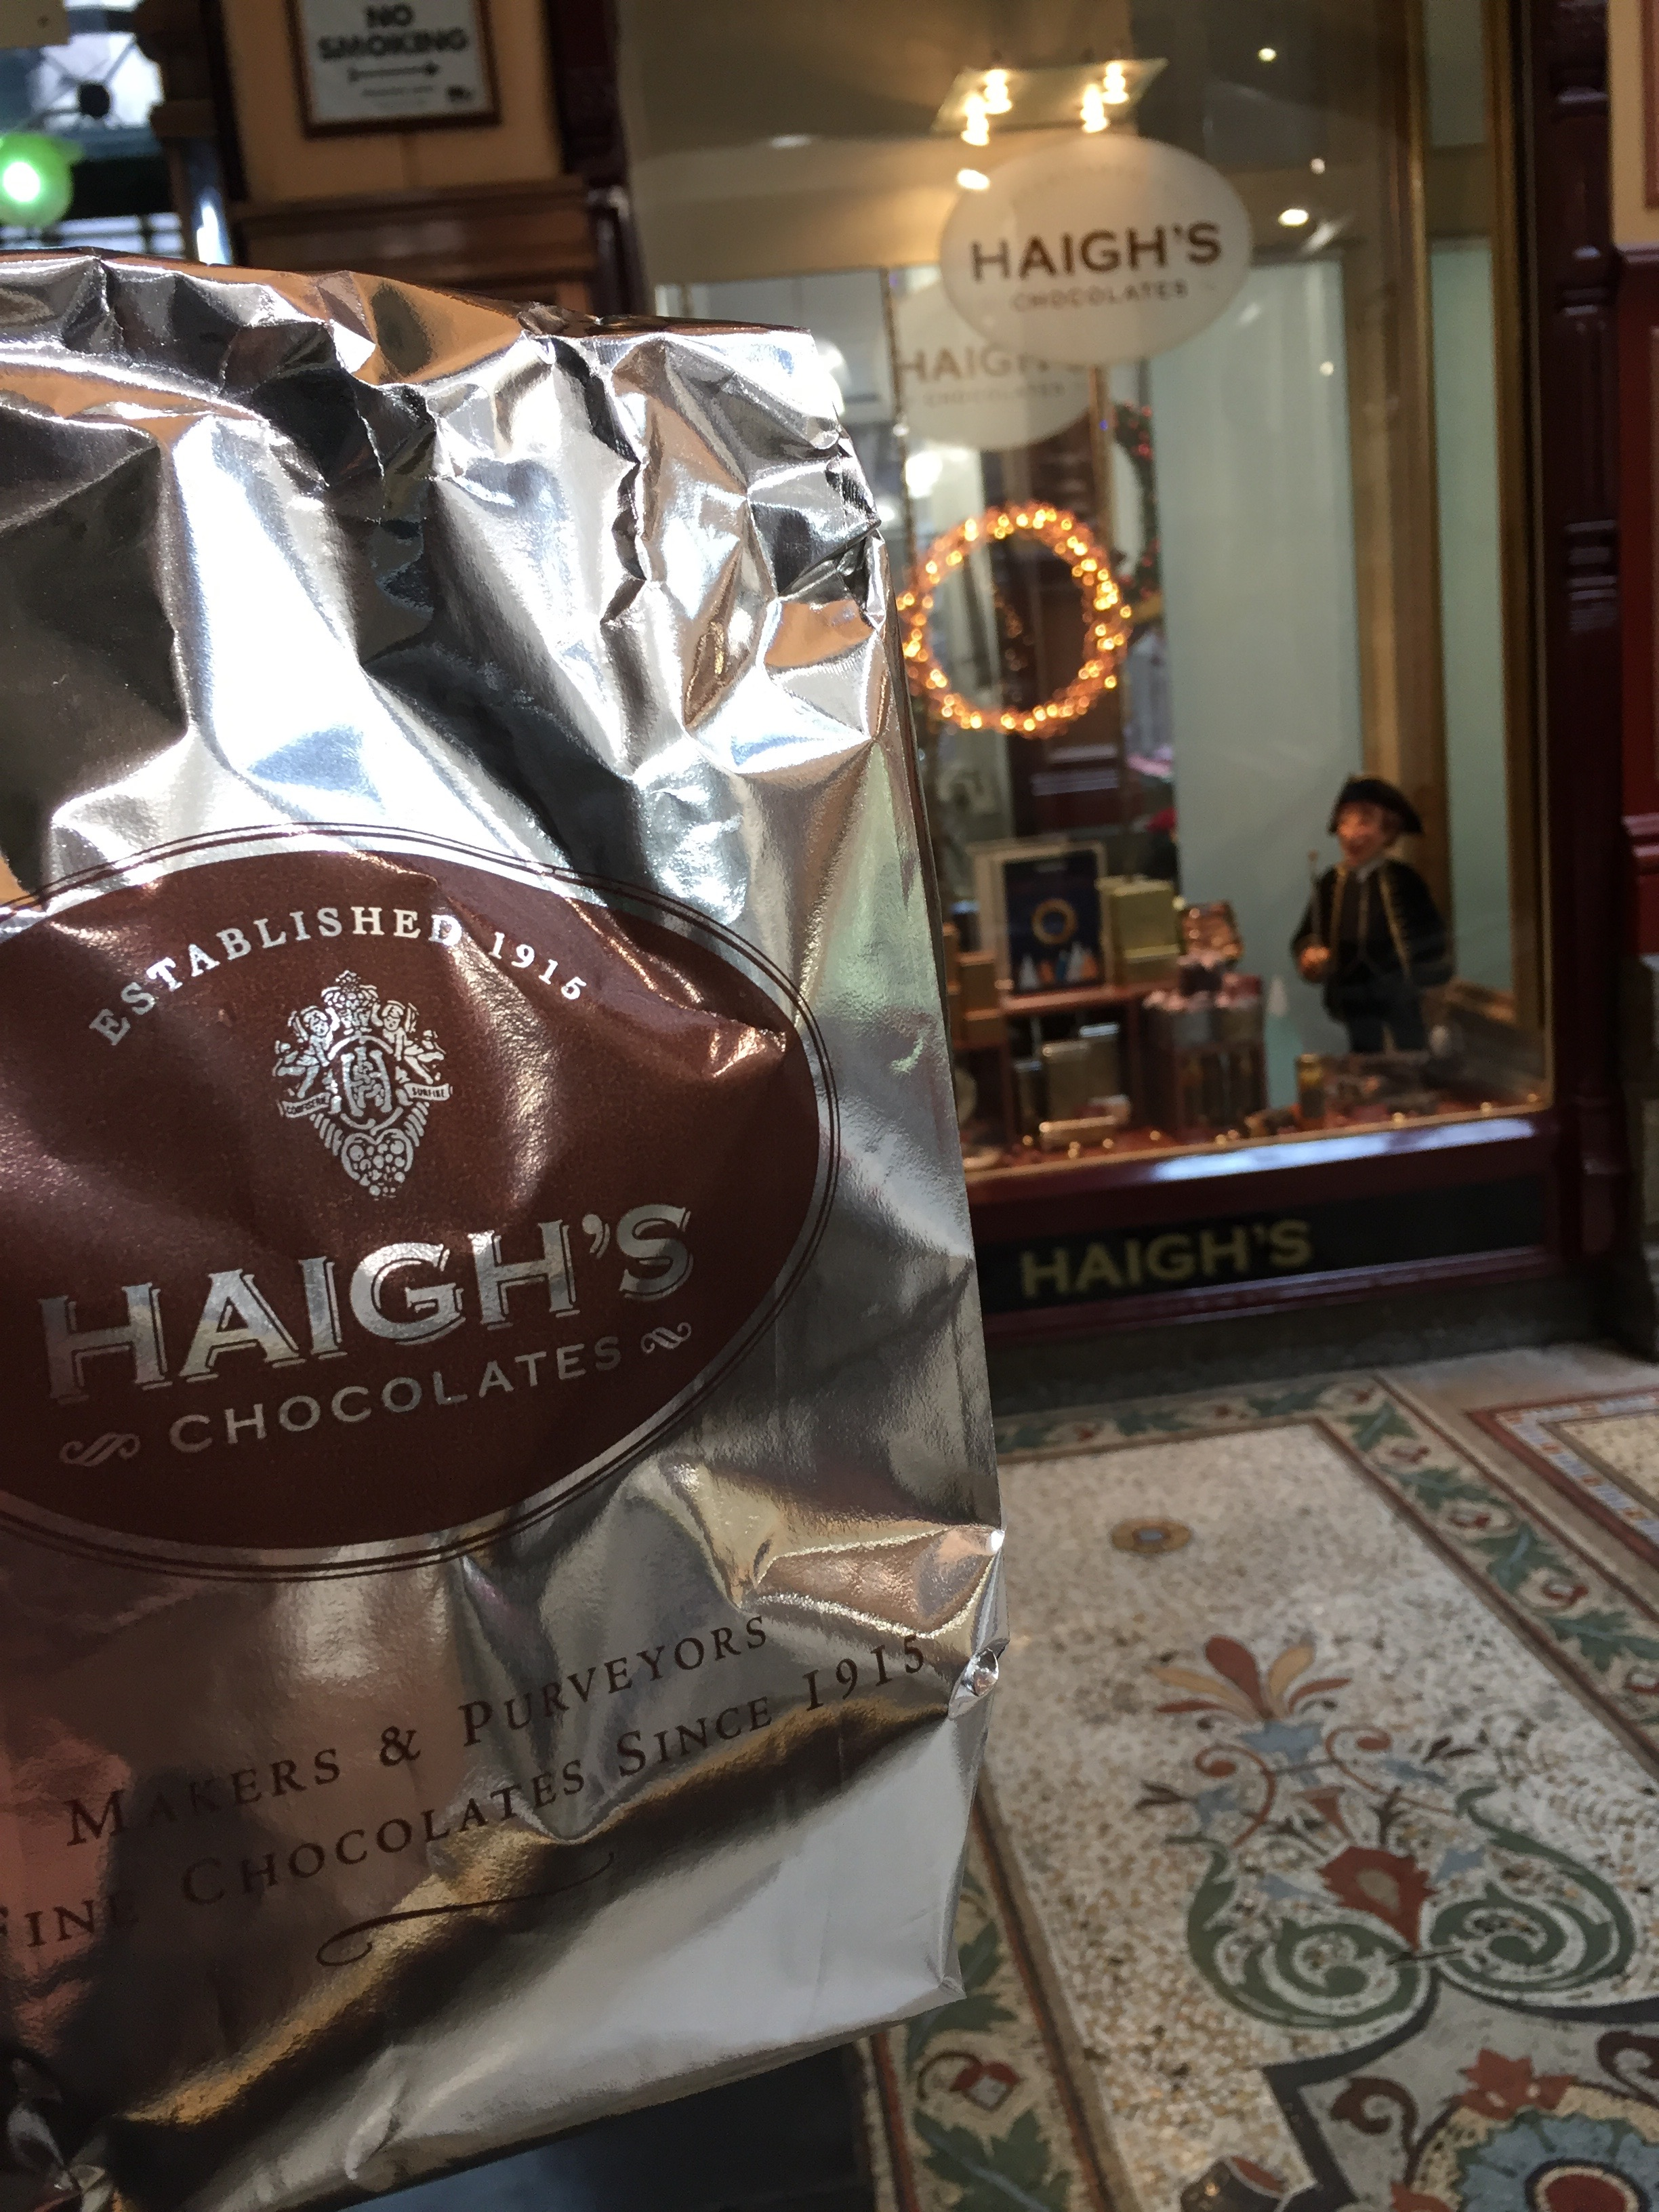 Foil bag for chocolates outside the Haigh's Chocolates store in Melbourne